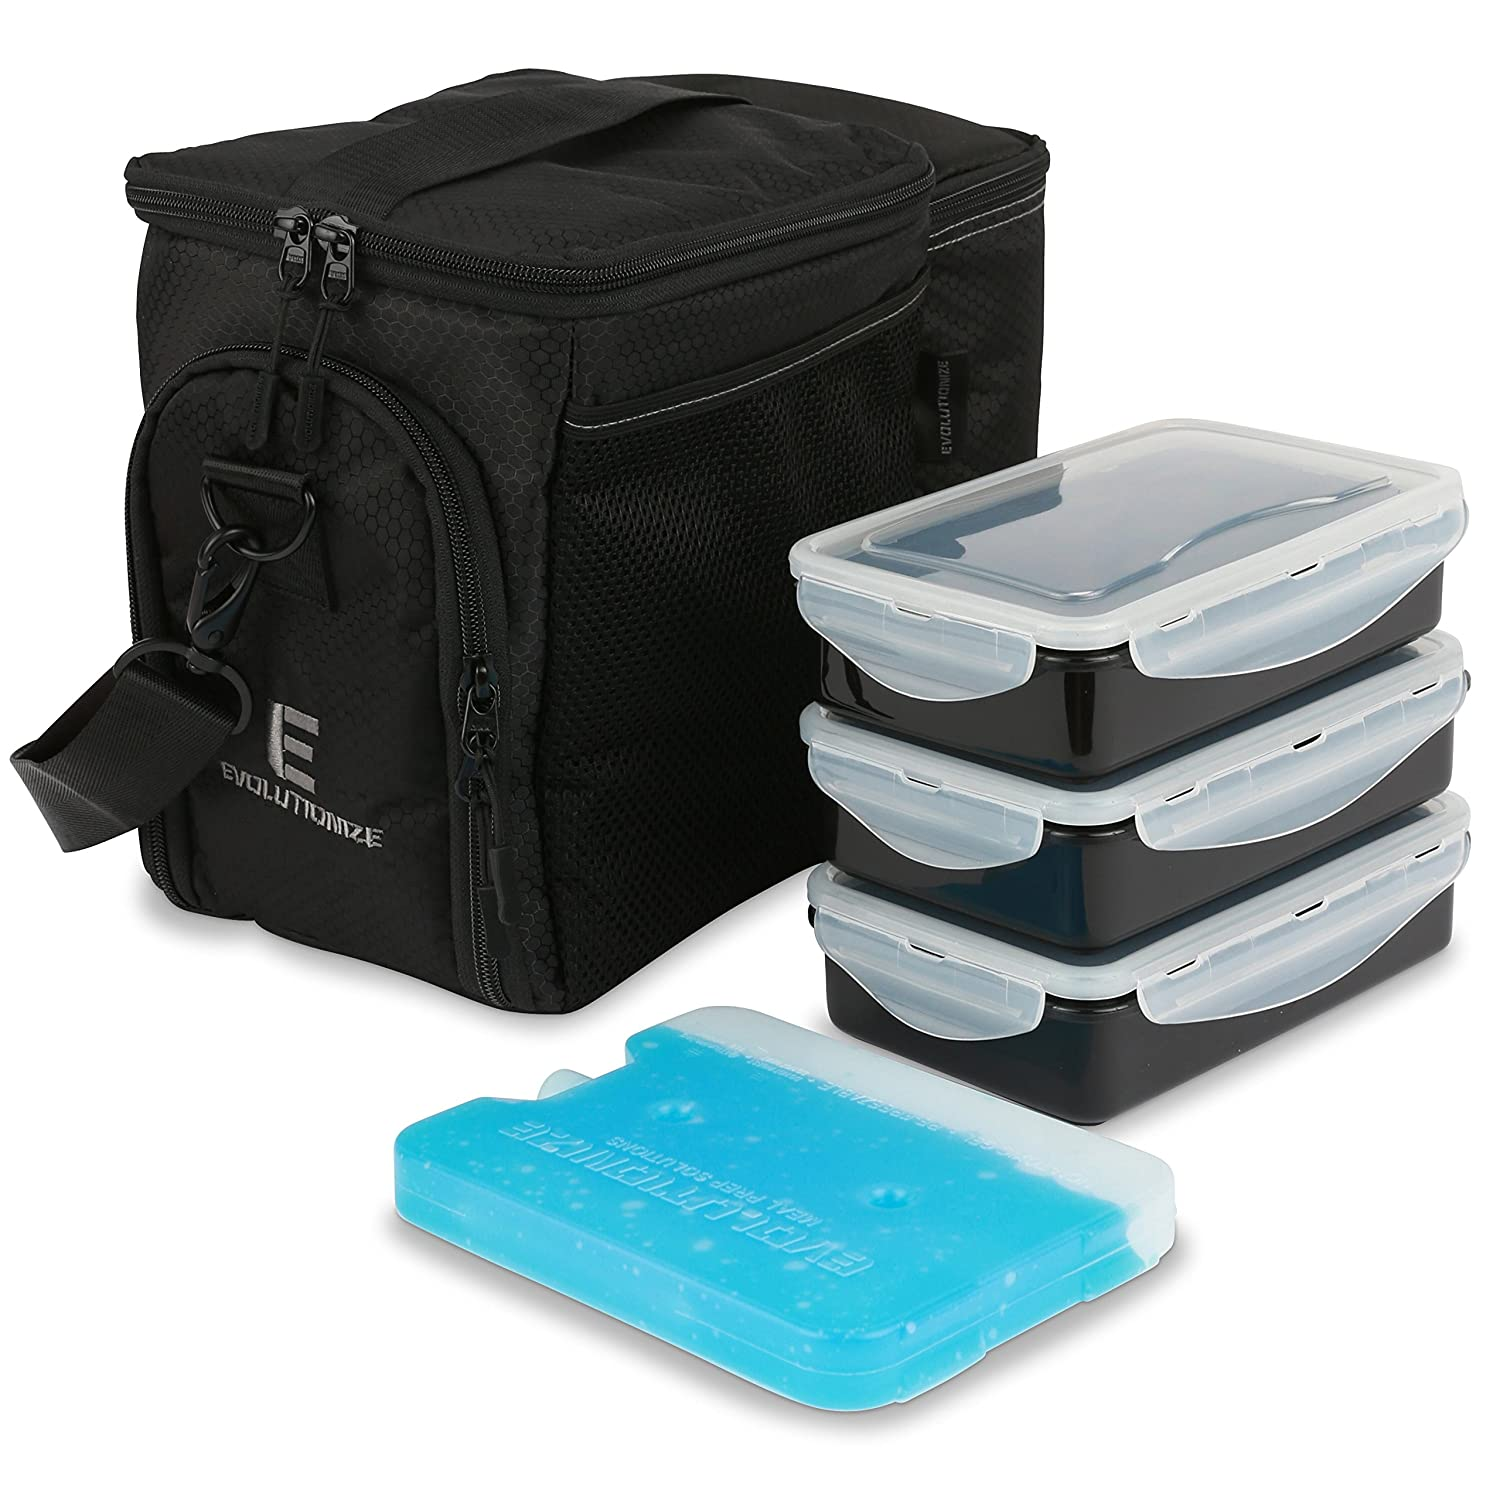 Evolutionize Insulated Meal Prep Container